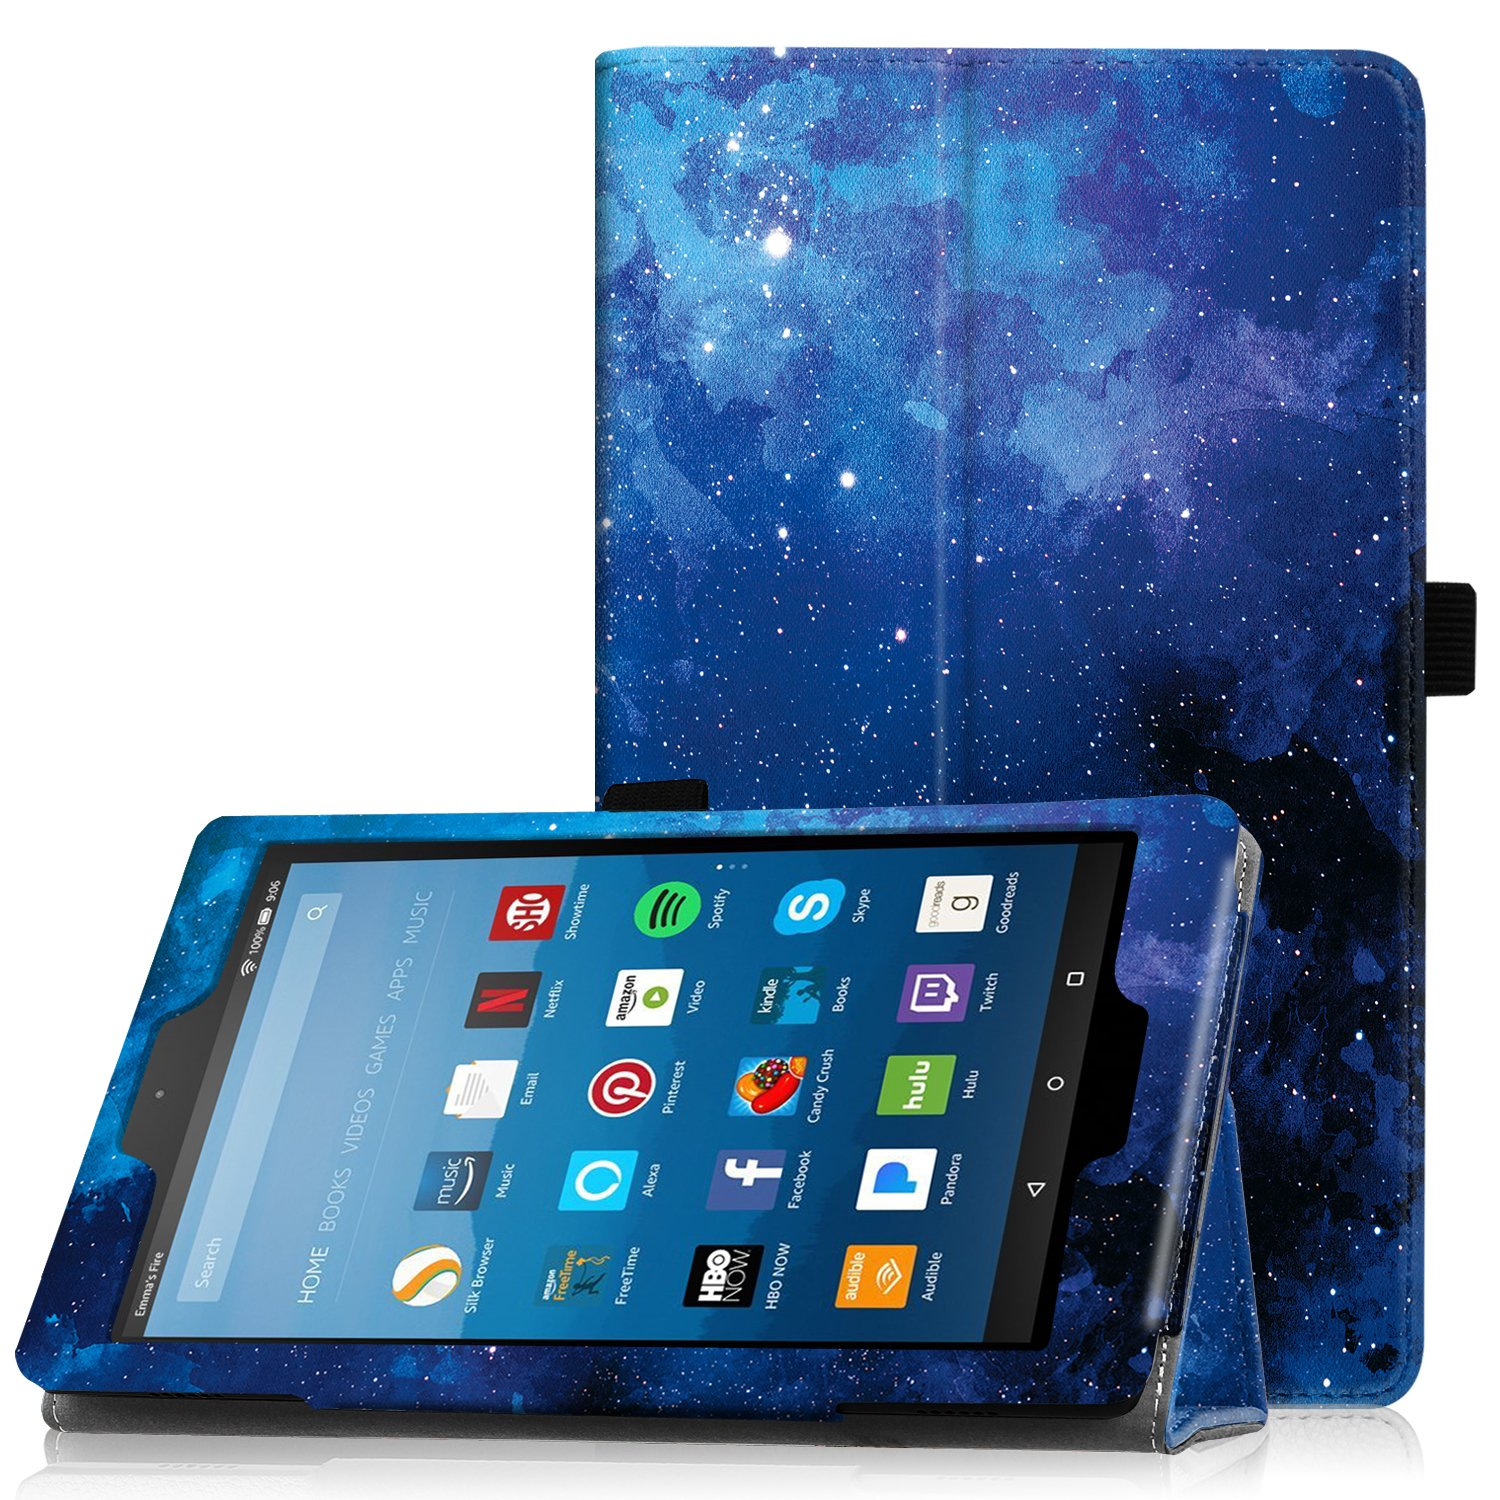 """Famavala Folio Case Cover with Auto Wake/Sleep Feature for 8"""" Fire HD 8 Tablet [Compatible with 8th Generation 2018 / 7th Generation 2017 ] 8-Inch Tablet (BlueSky)"""